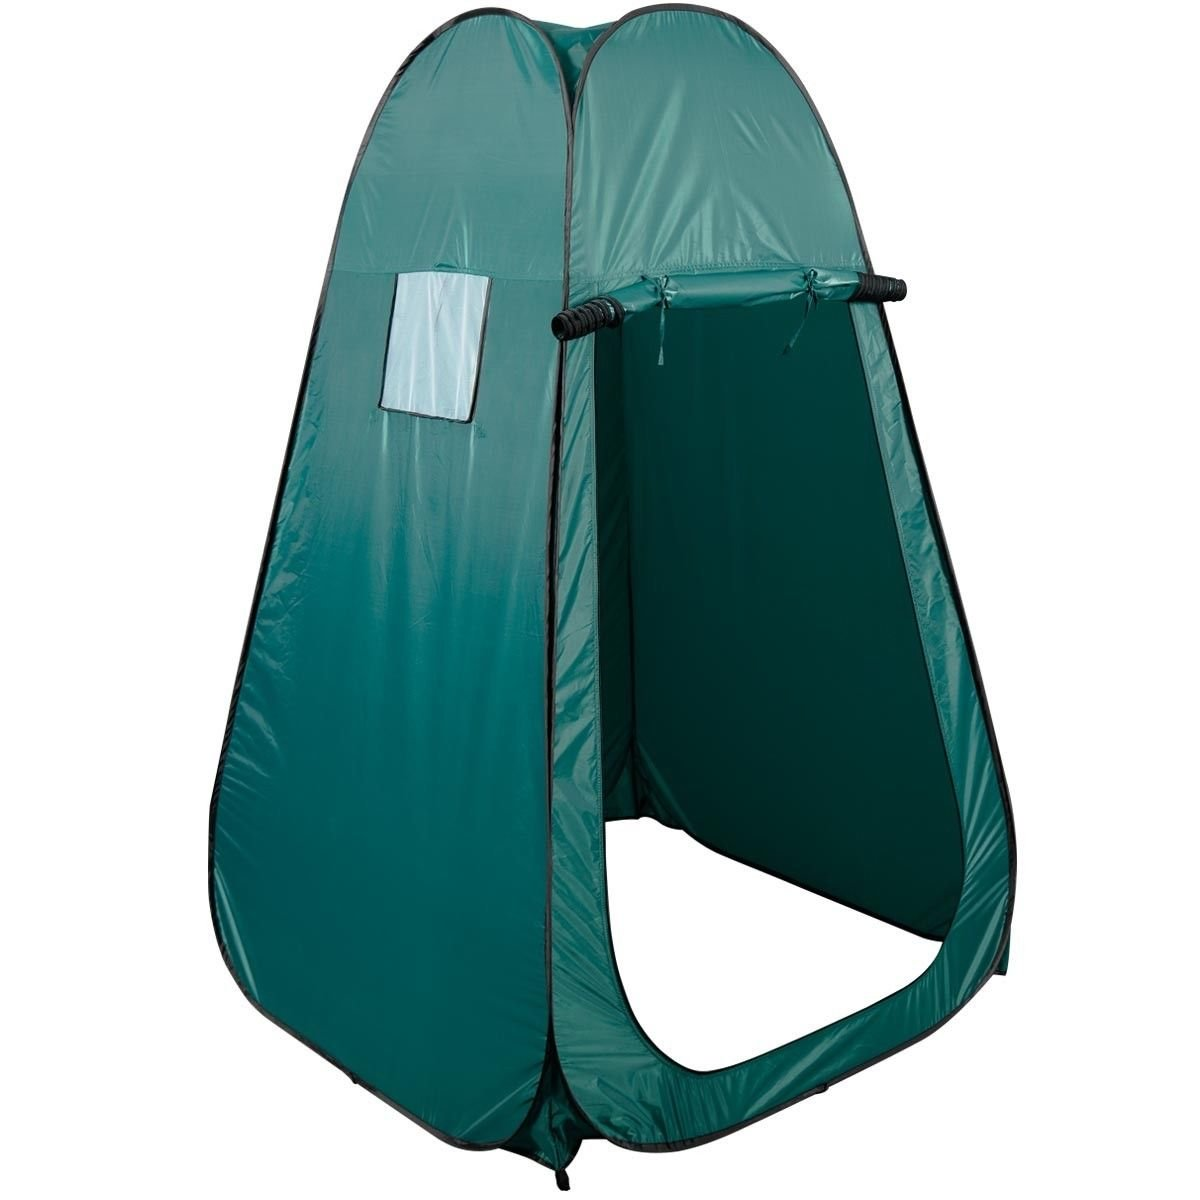 Top 10 Best Camping Privacy Shower Tents Reviews 2016-2017 on Flipboard